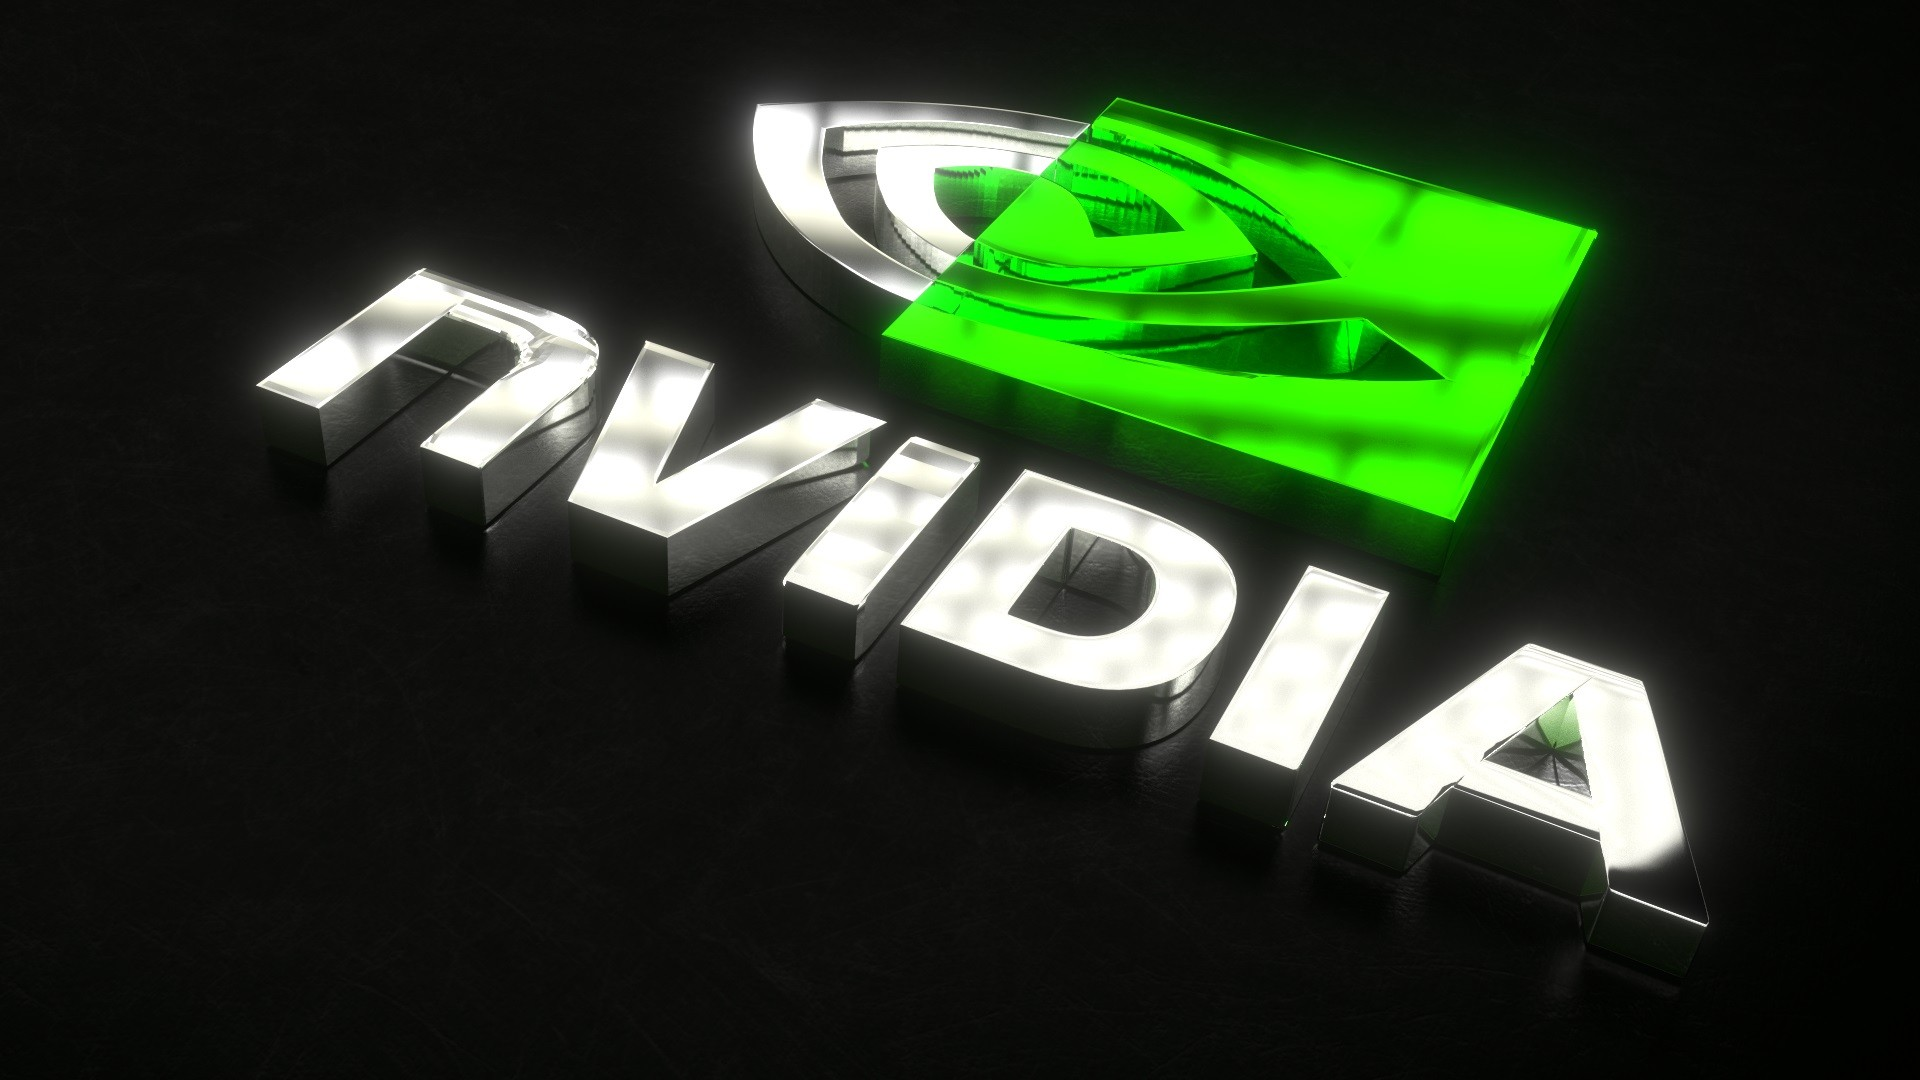 NVIDIA will be ending graphics card driver support for 32-bit systems